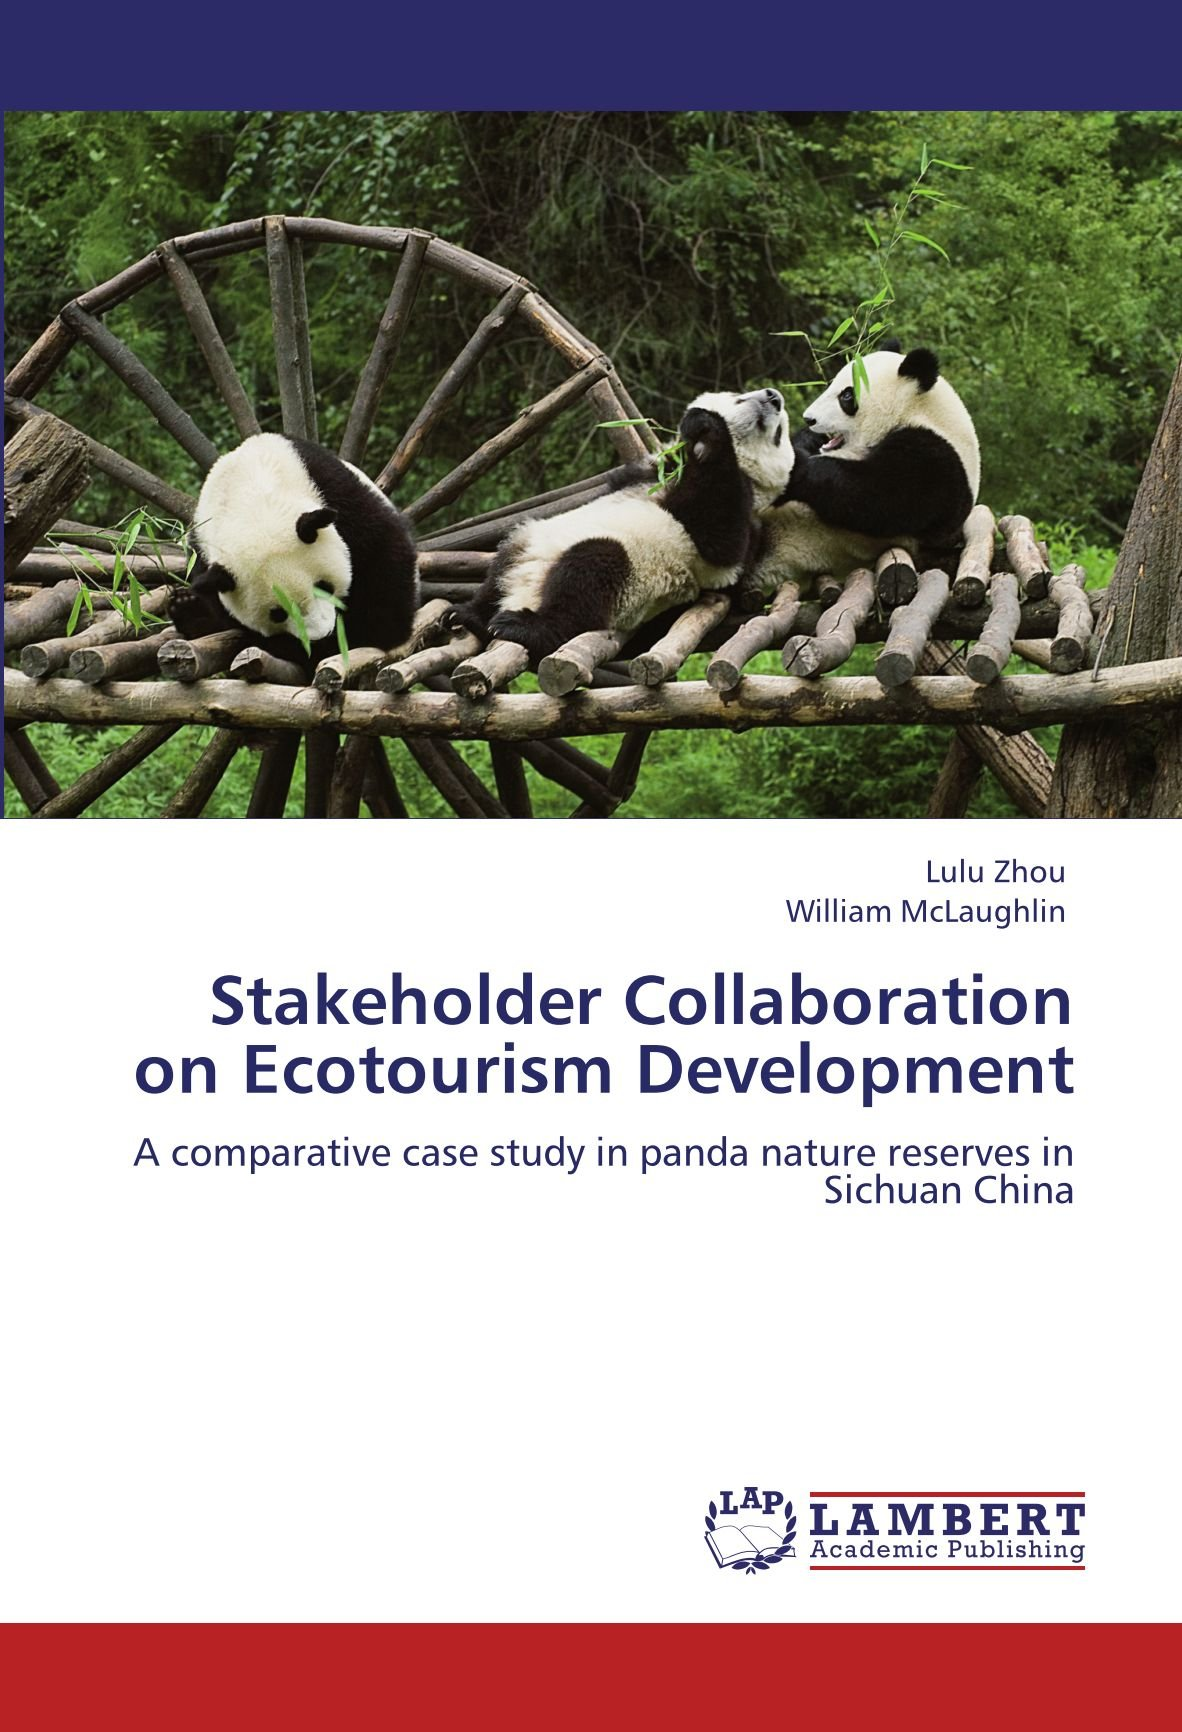 Download Stakeholder Collaboration on Ecotourism Development: A comparative case study in panda nature reserves in Sichuan China PDF